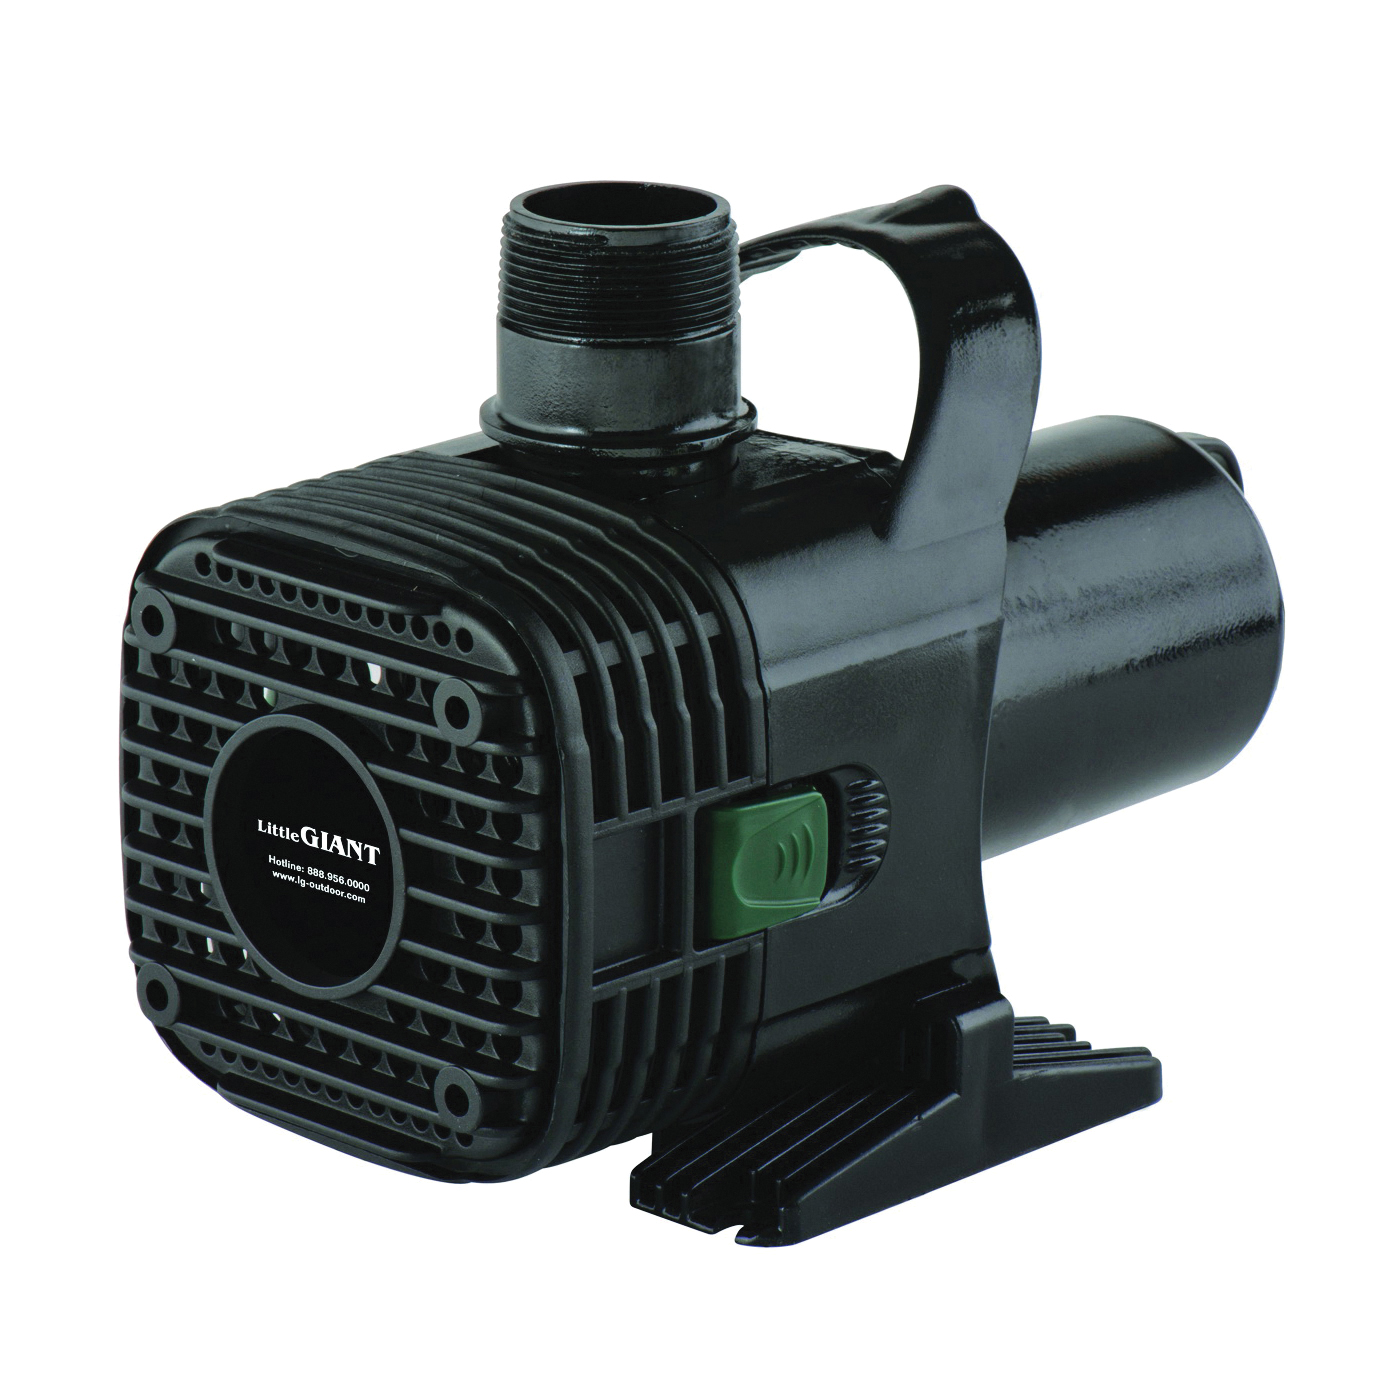 Picture of Little Giant 566725 Wet Rotor Pump, 1.25 A, 115 V, 1/2 in Connection, 2772 gph, Horizontal, Vertical Mounting